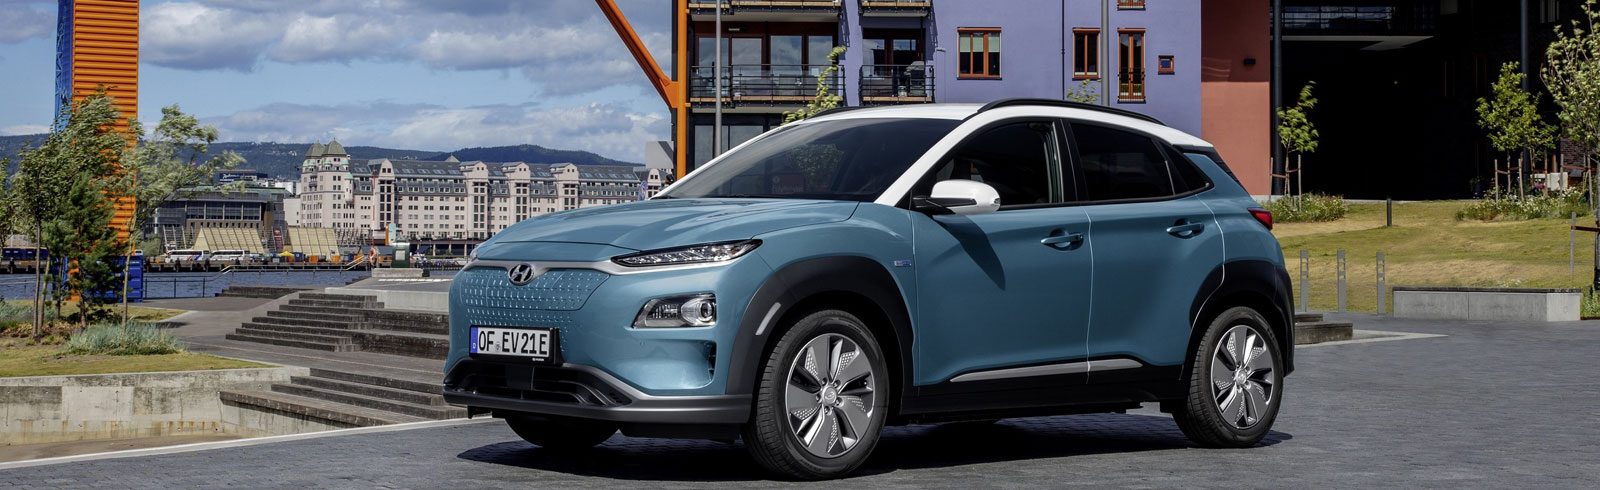 Kona Electric is one of the greatest EVs on sale - TopGear Electric Awards